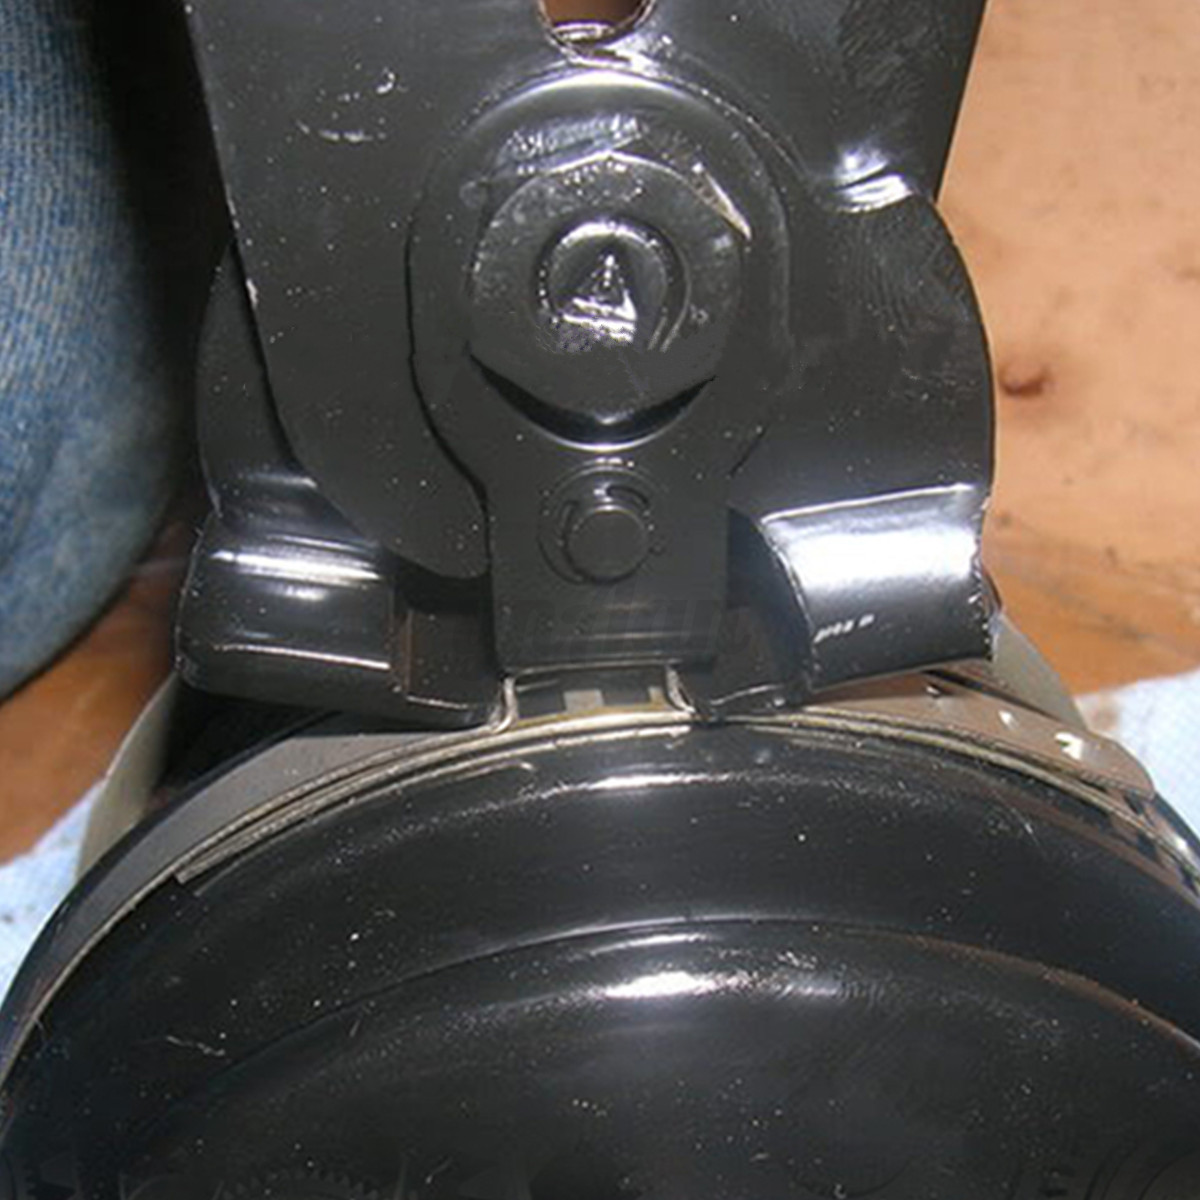 cv joint boot clamp pliers instructions